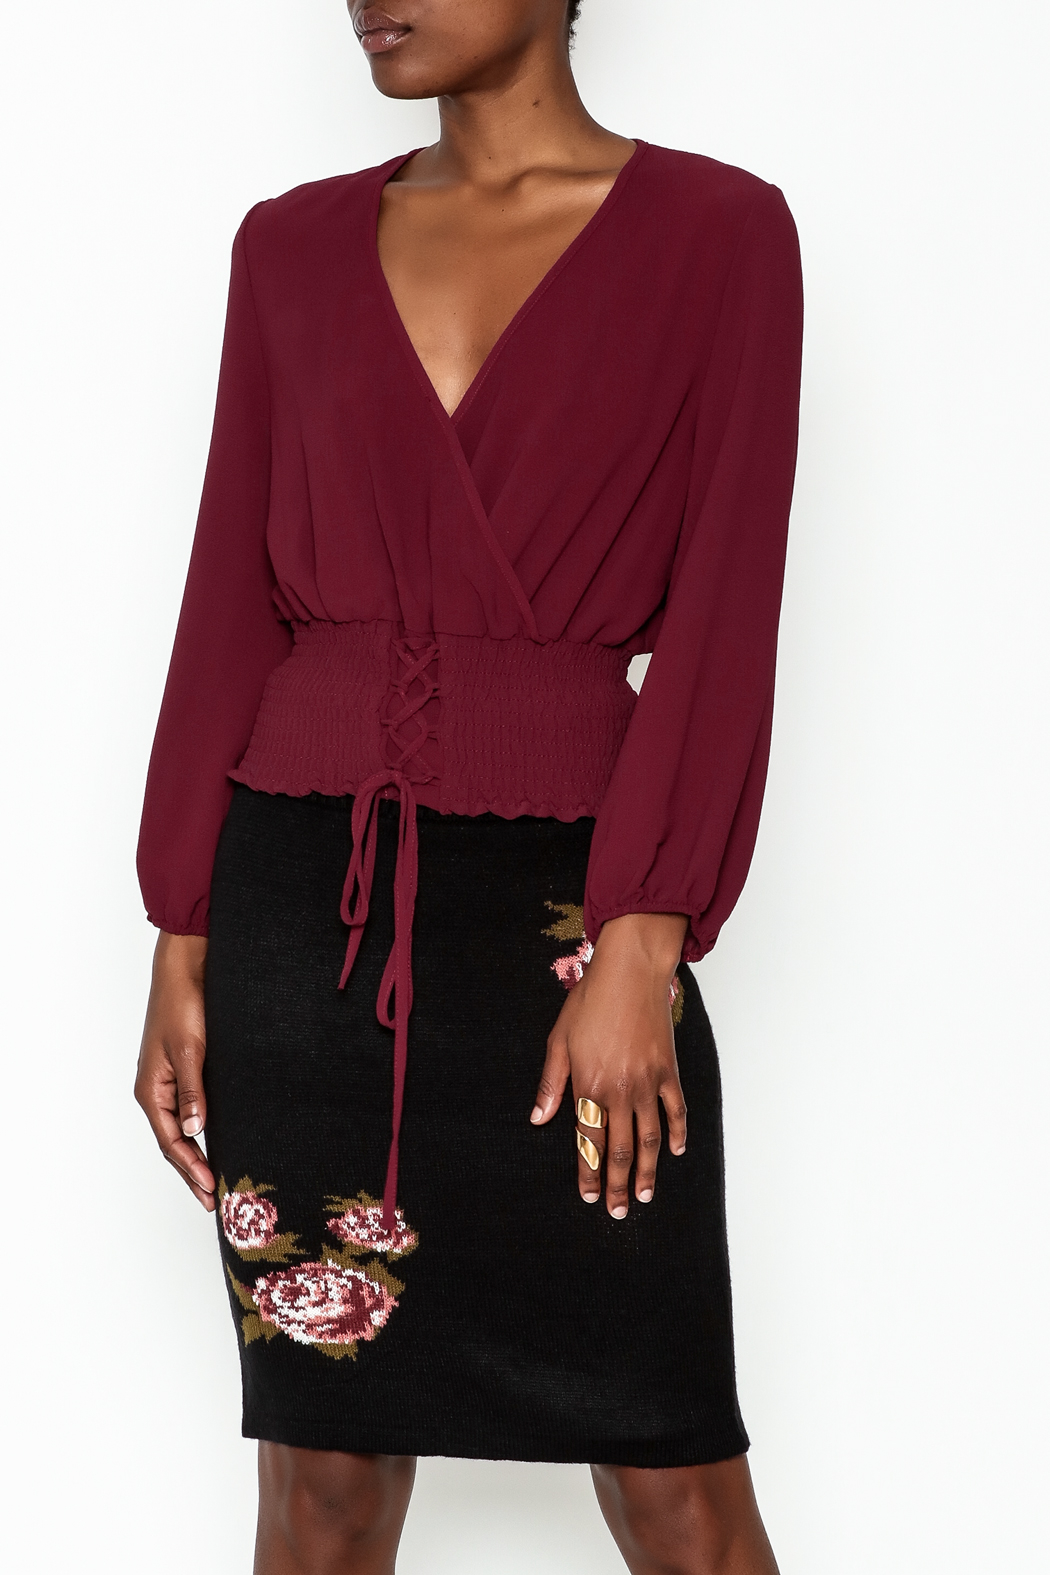 MICHEL Corset Top - Front Cropped Image